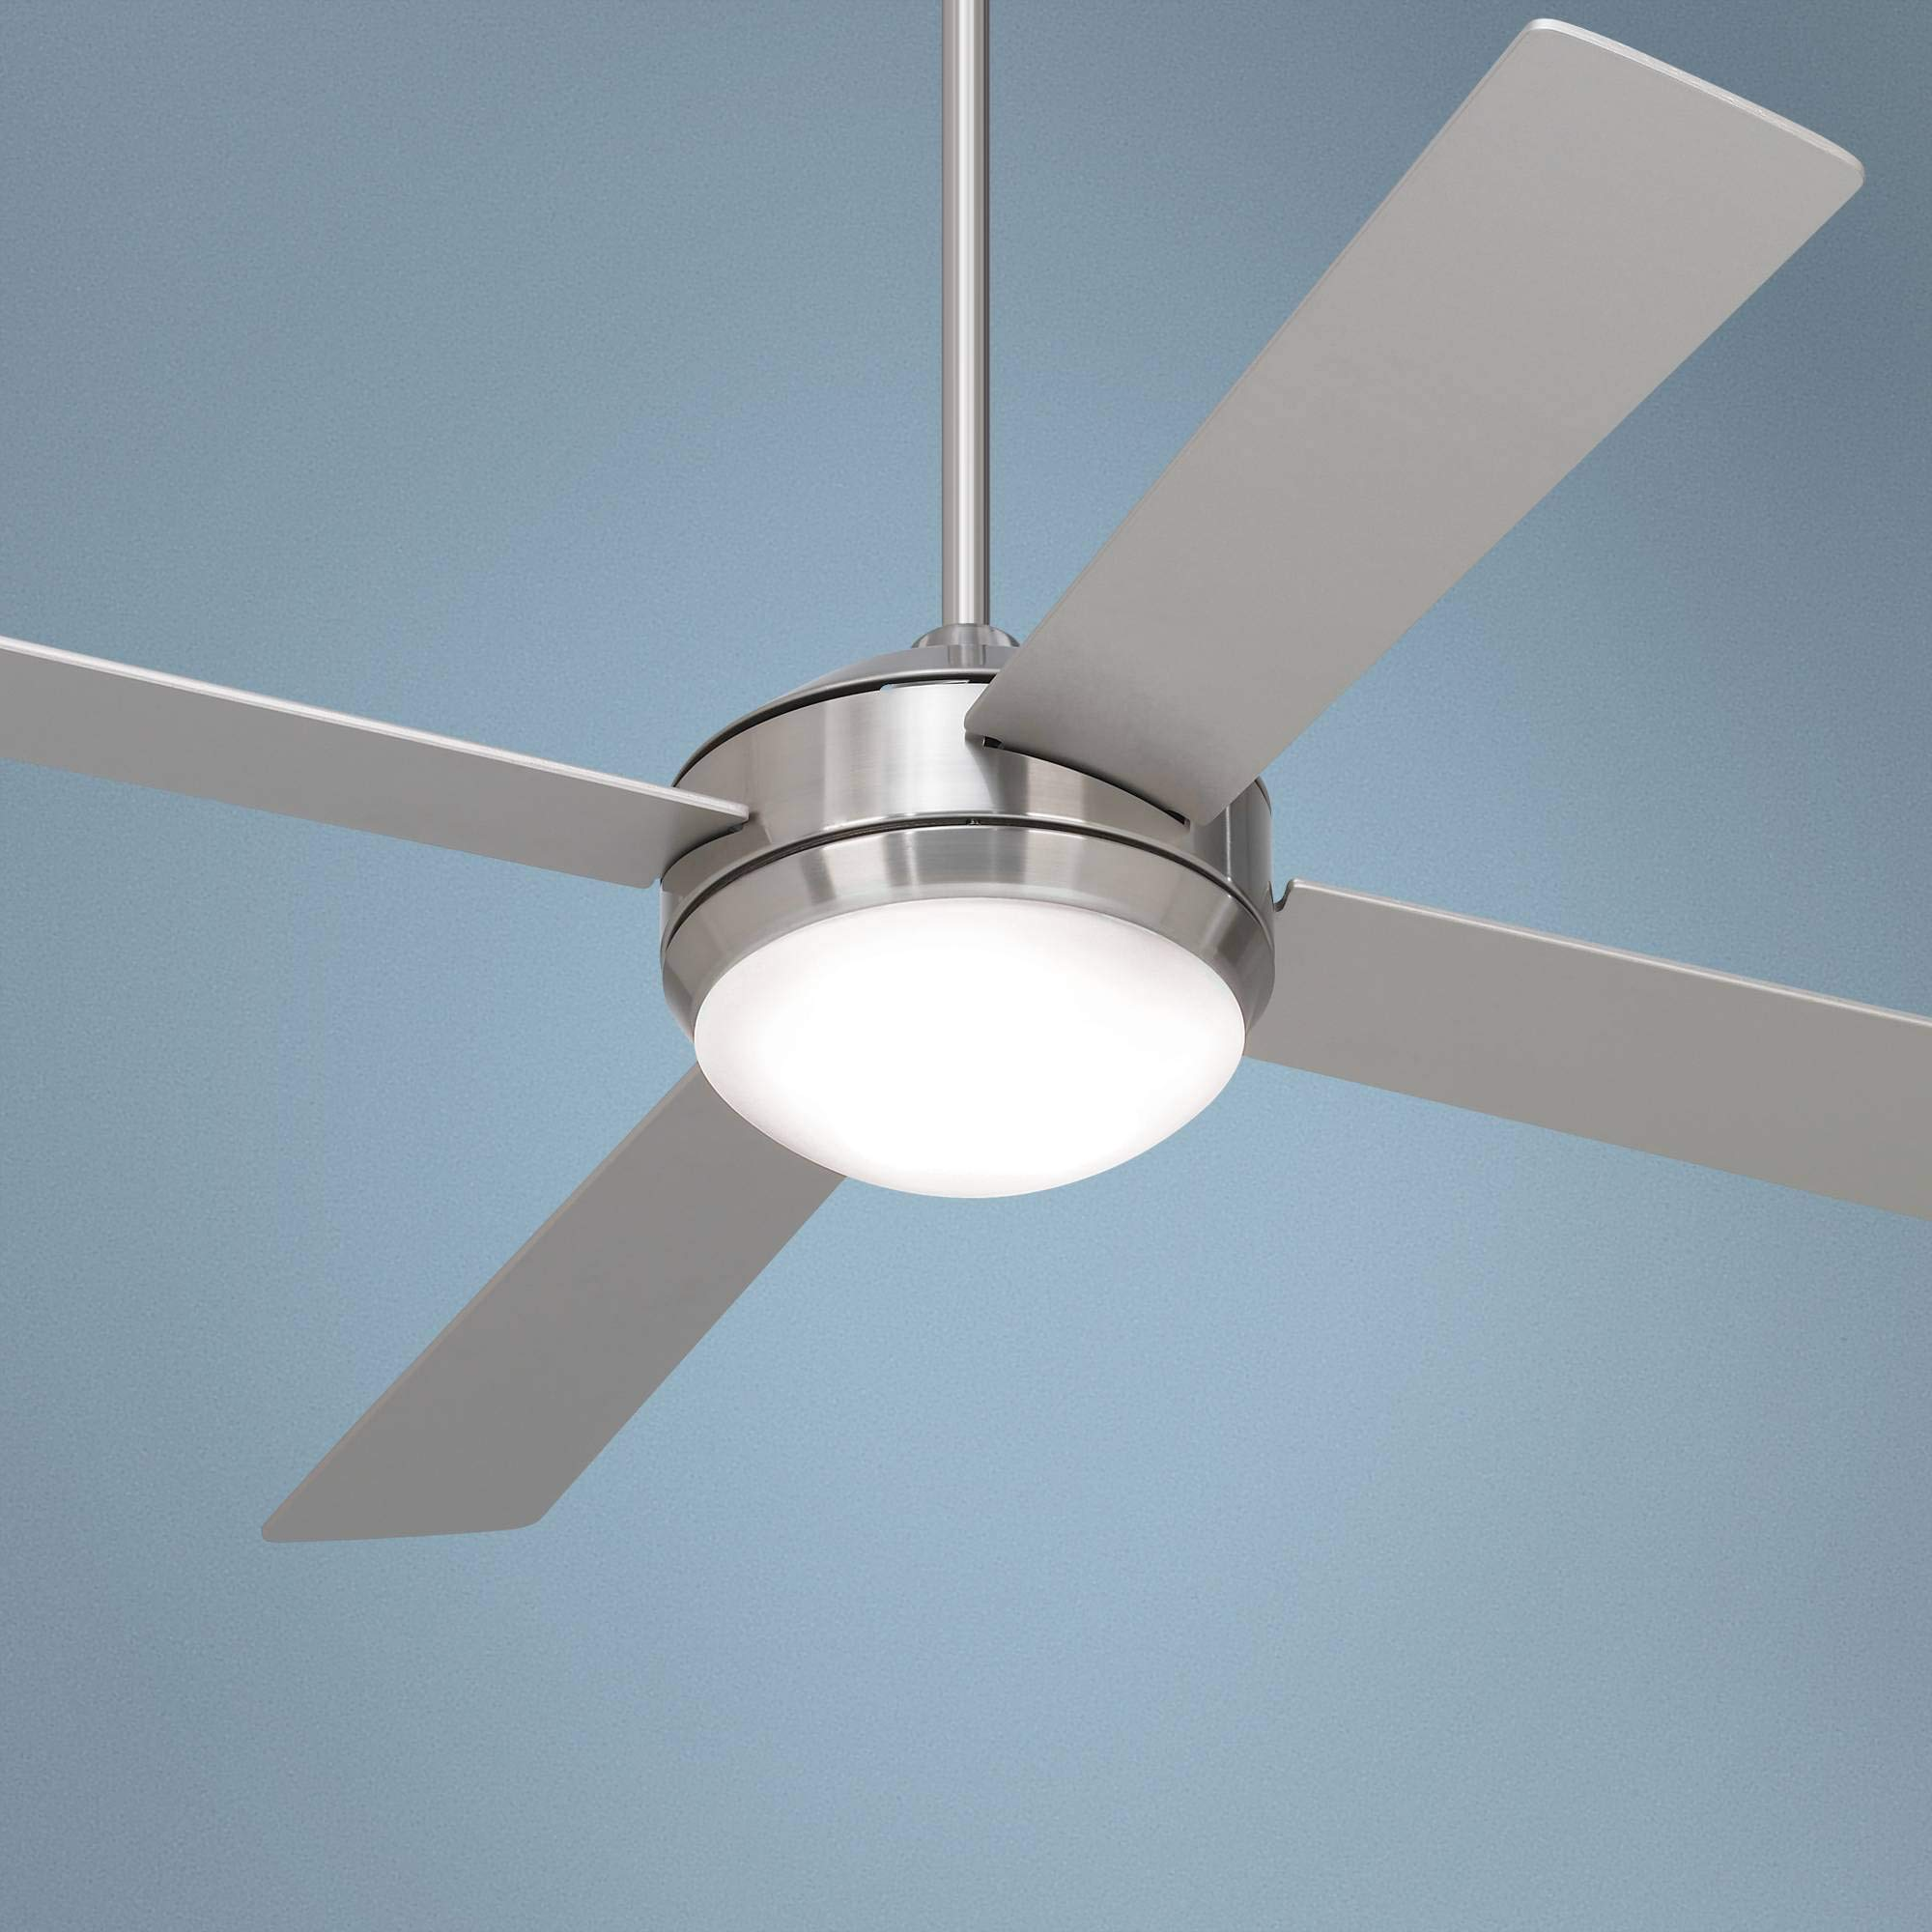 52'' Courier Brushed Nickel LED Ceiling Fan - Casa Vieja